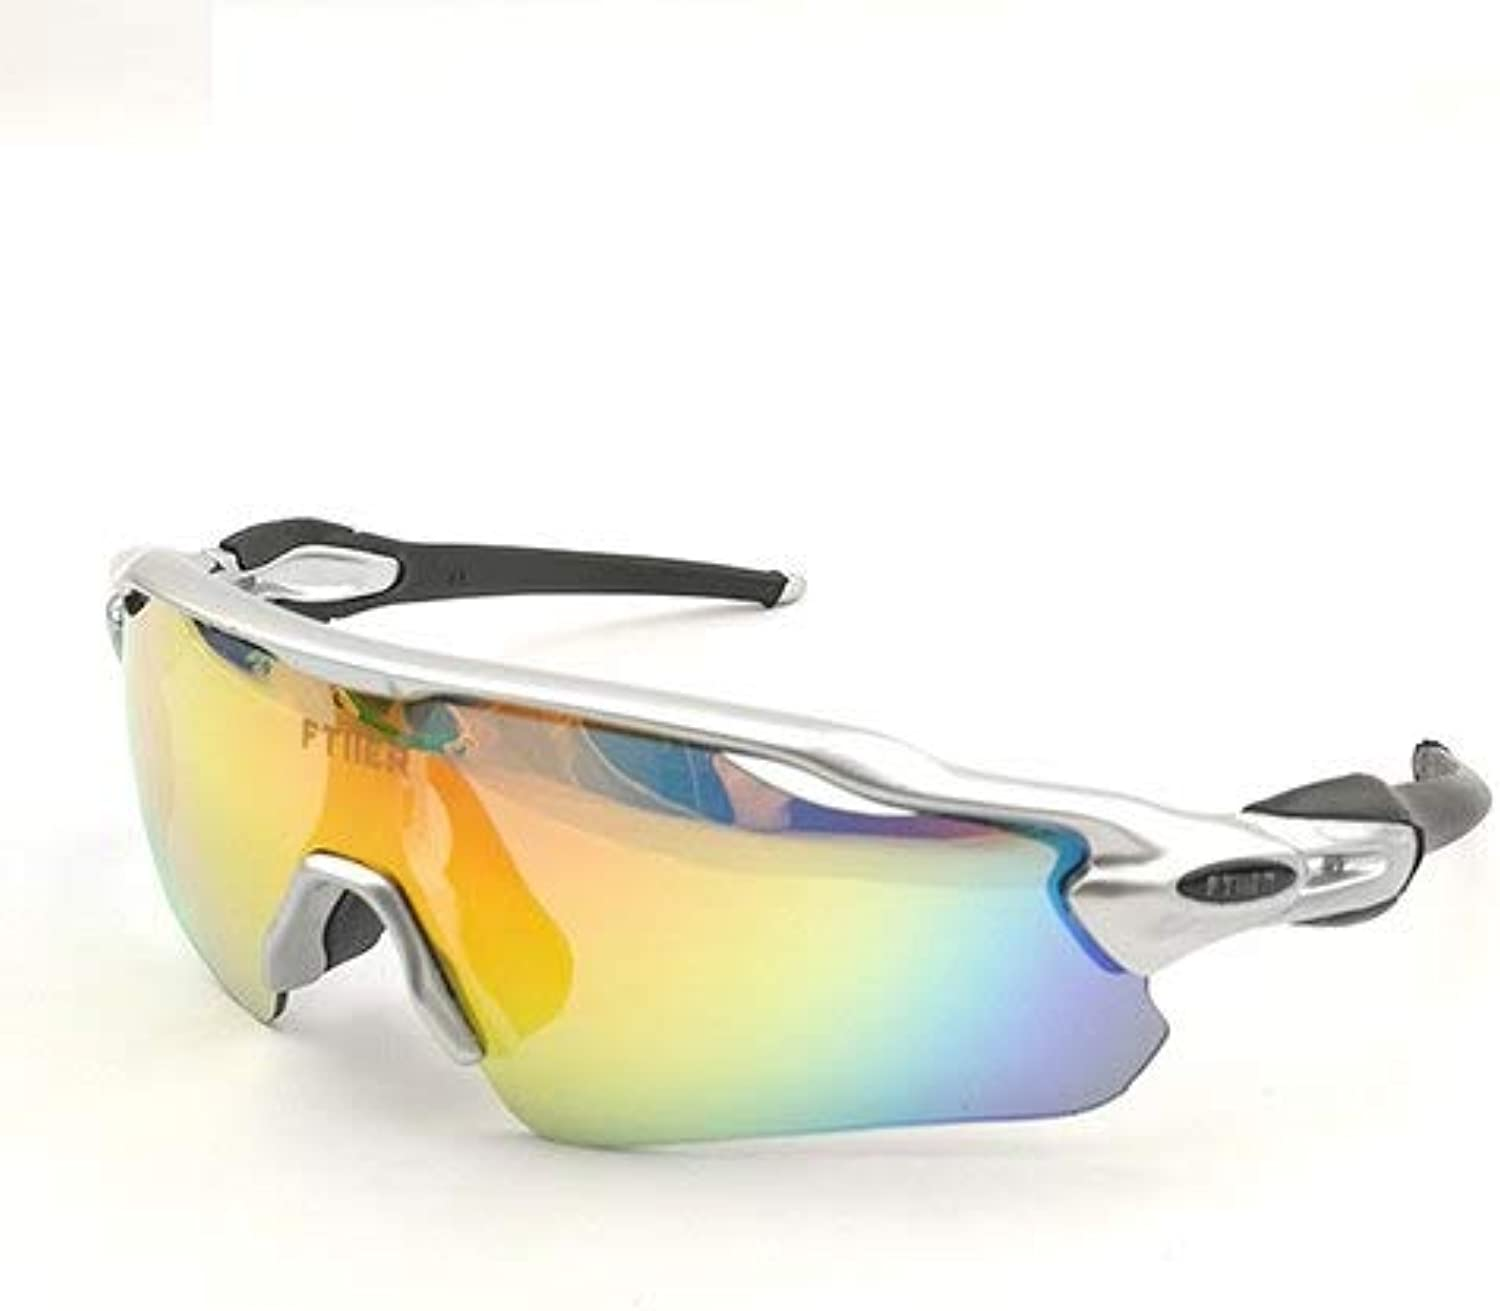 2   2017 Men Women UV400 Outdoor Cycling Glasses Sports Windproof Eyewear Mountain Bike Bicycle Motorcycle Glasses Sunglasses